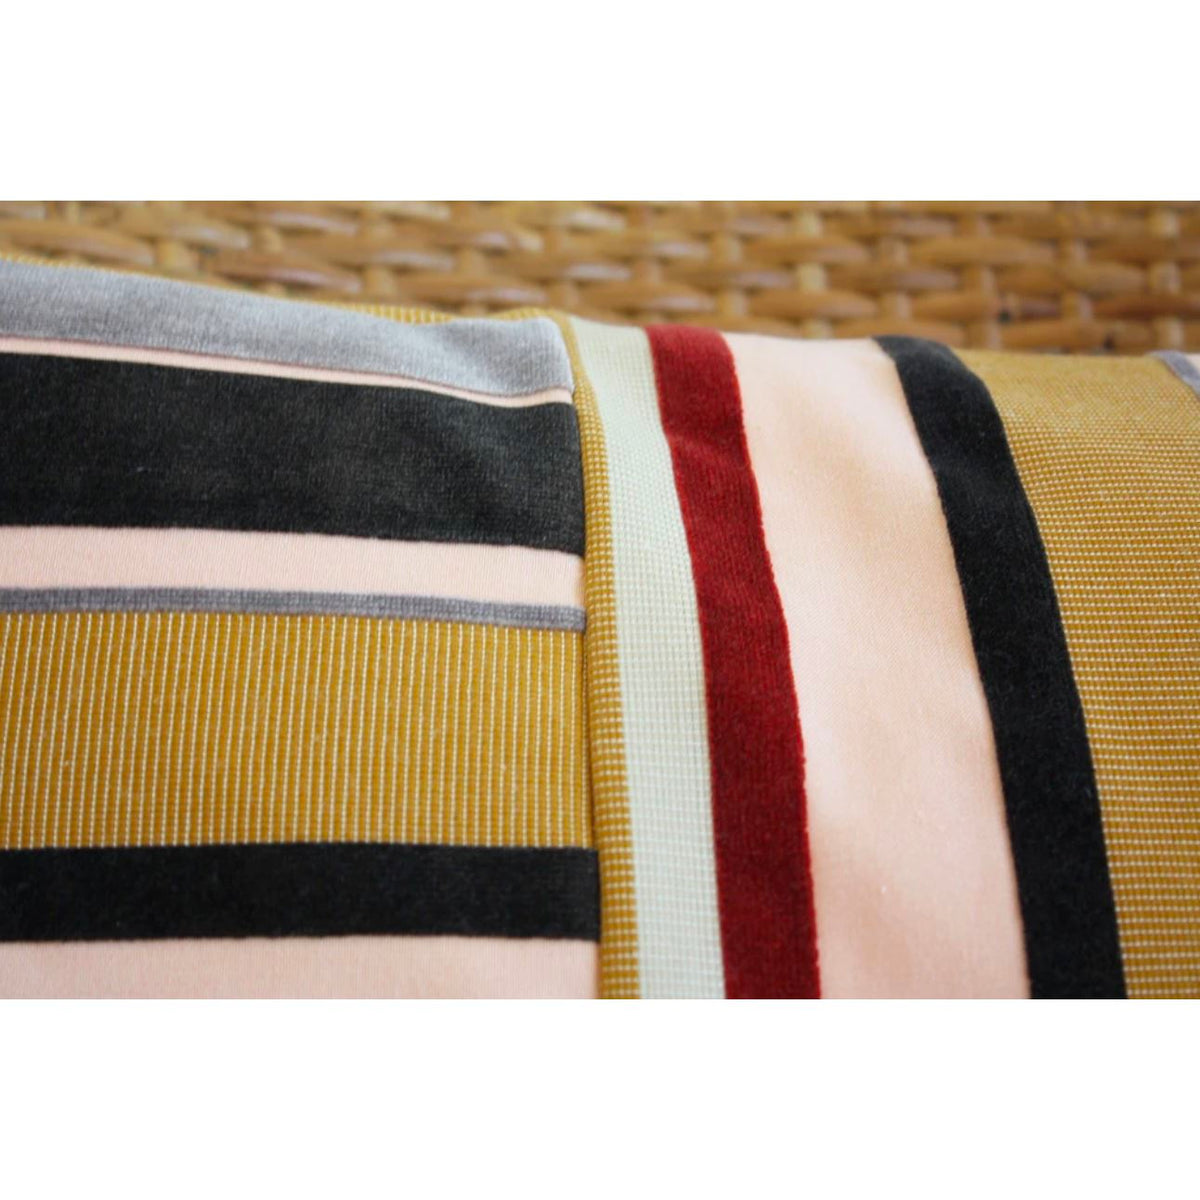 Grosgrain Velvet Lumbar Pillow Cover pillow Norwegian Wood